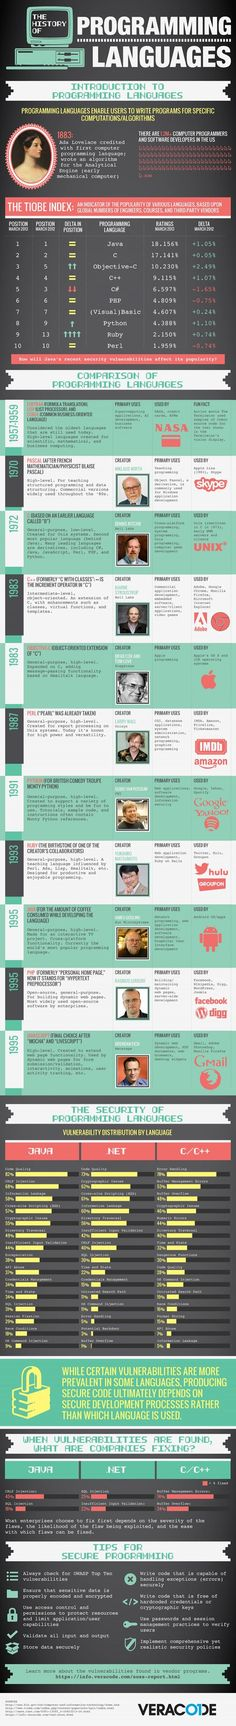 A brief history of computer programming languages #infographic